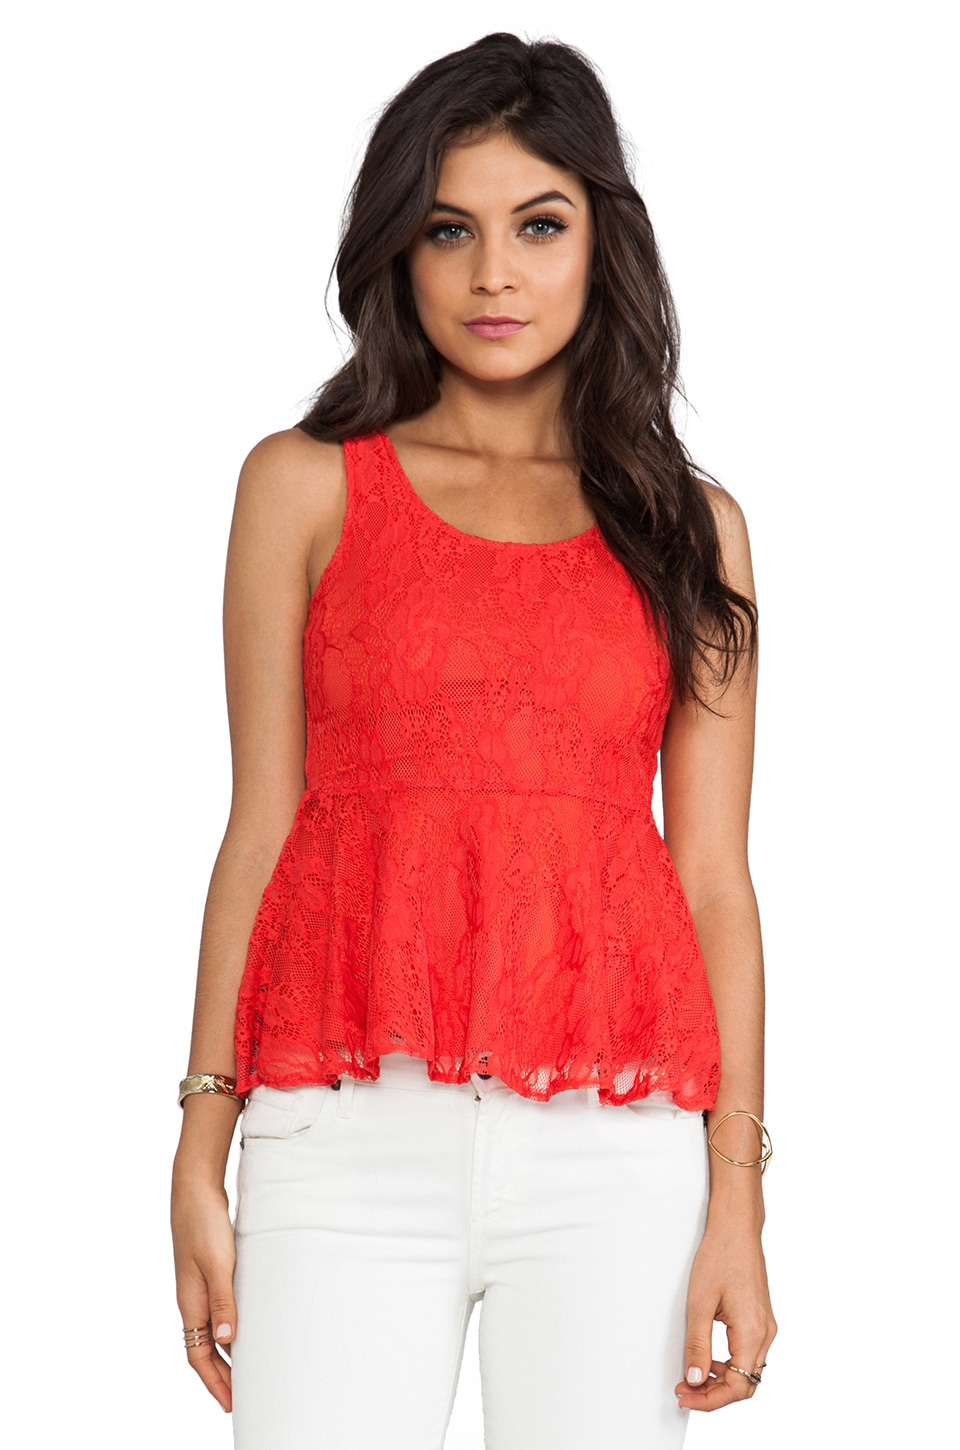 Lovers + Friends Soiree Top in Firework in Red